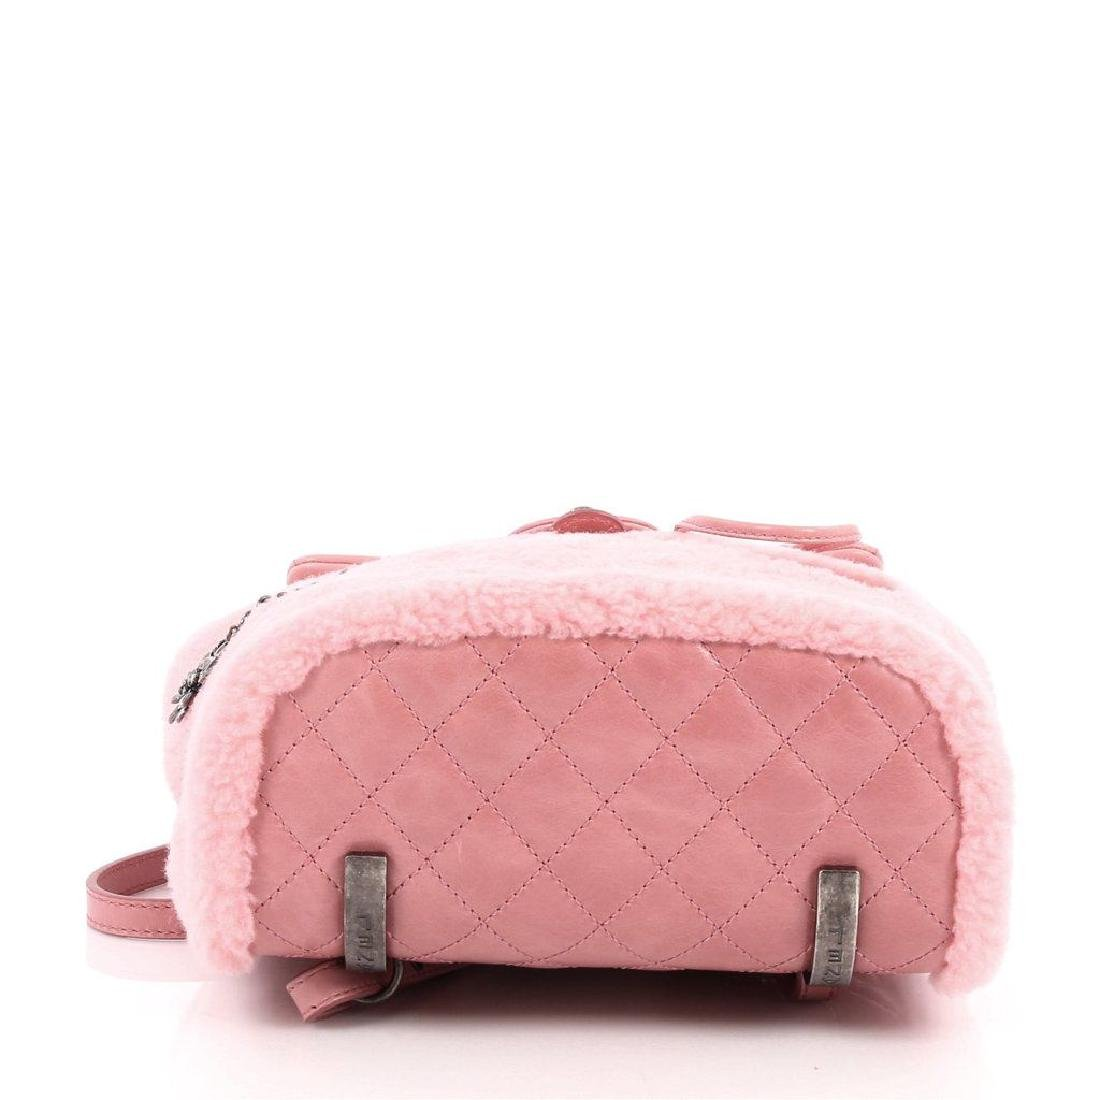 Authentic Chanel Backpack Pink Shearling Quilted - 8